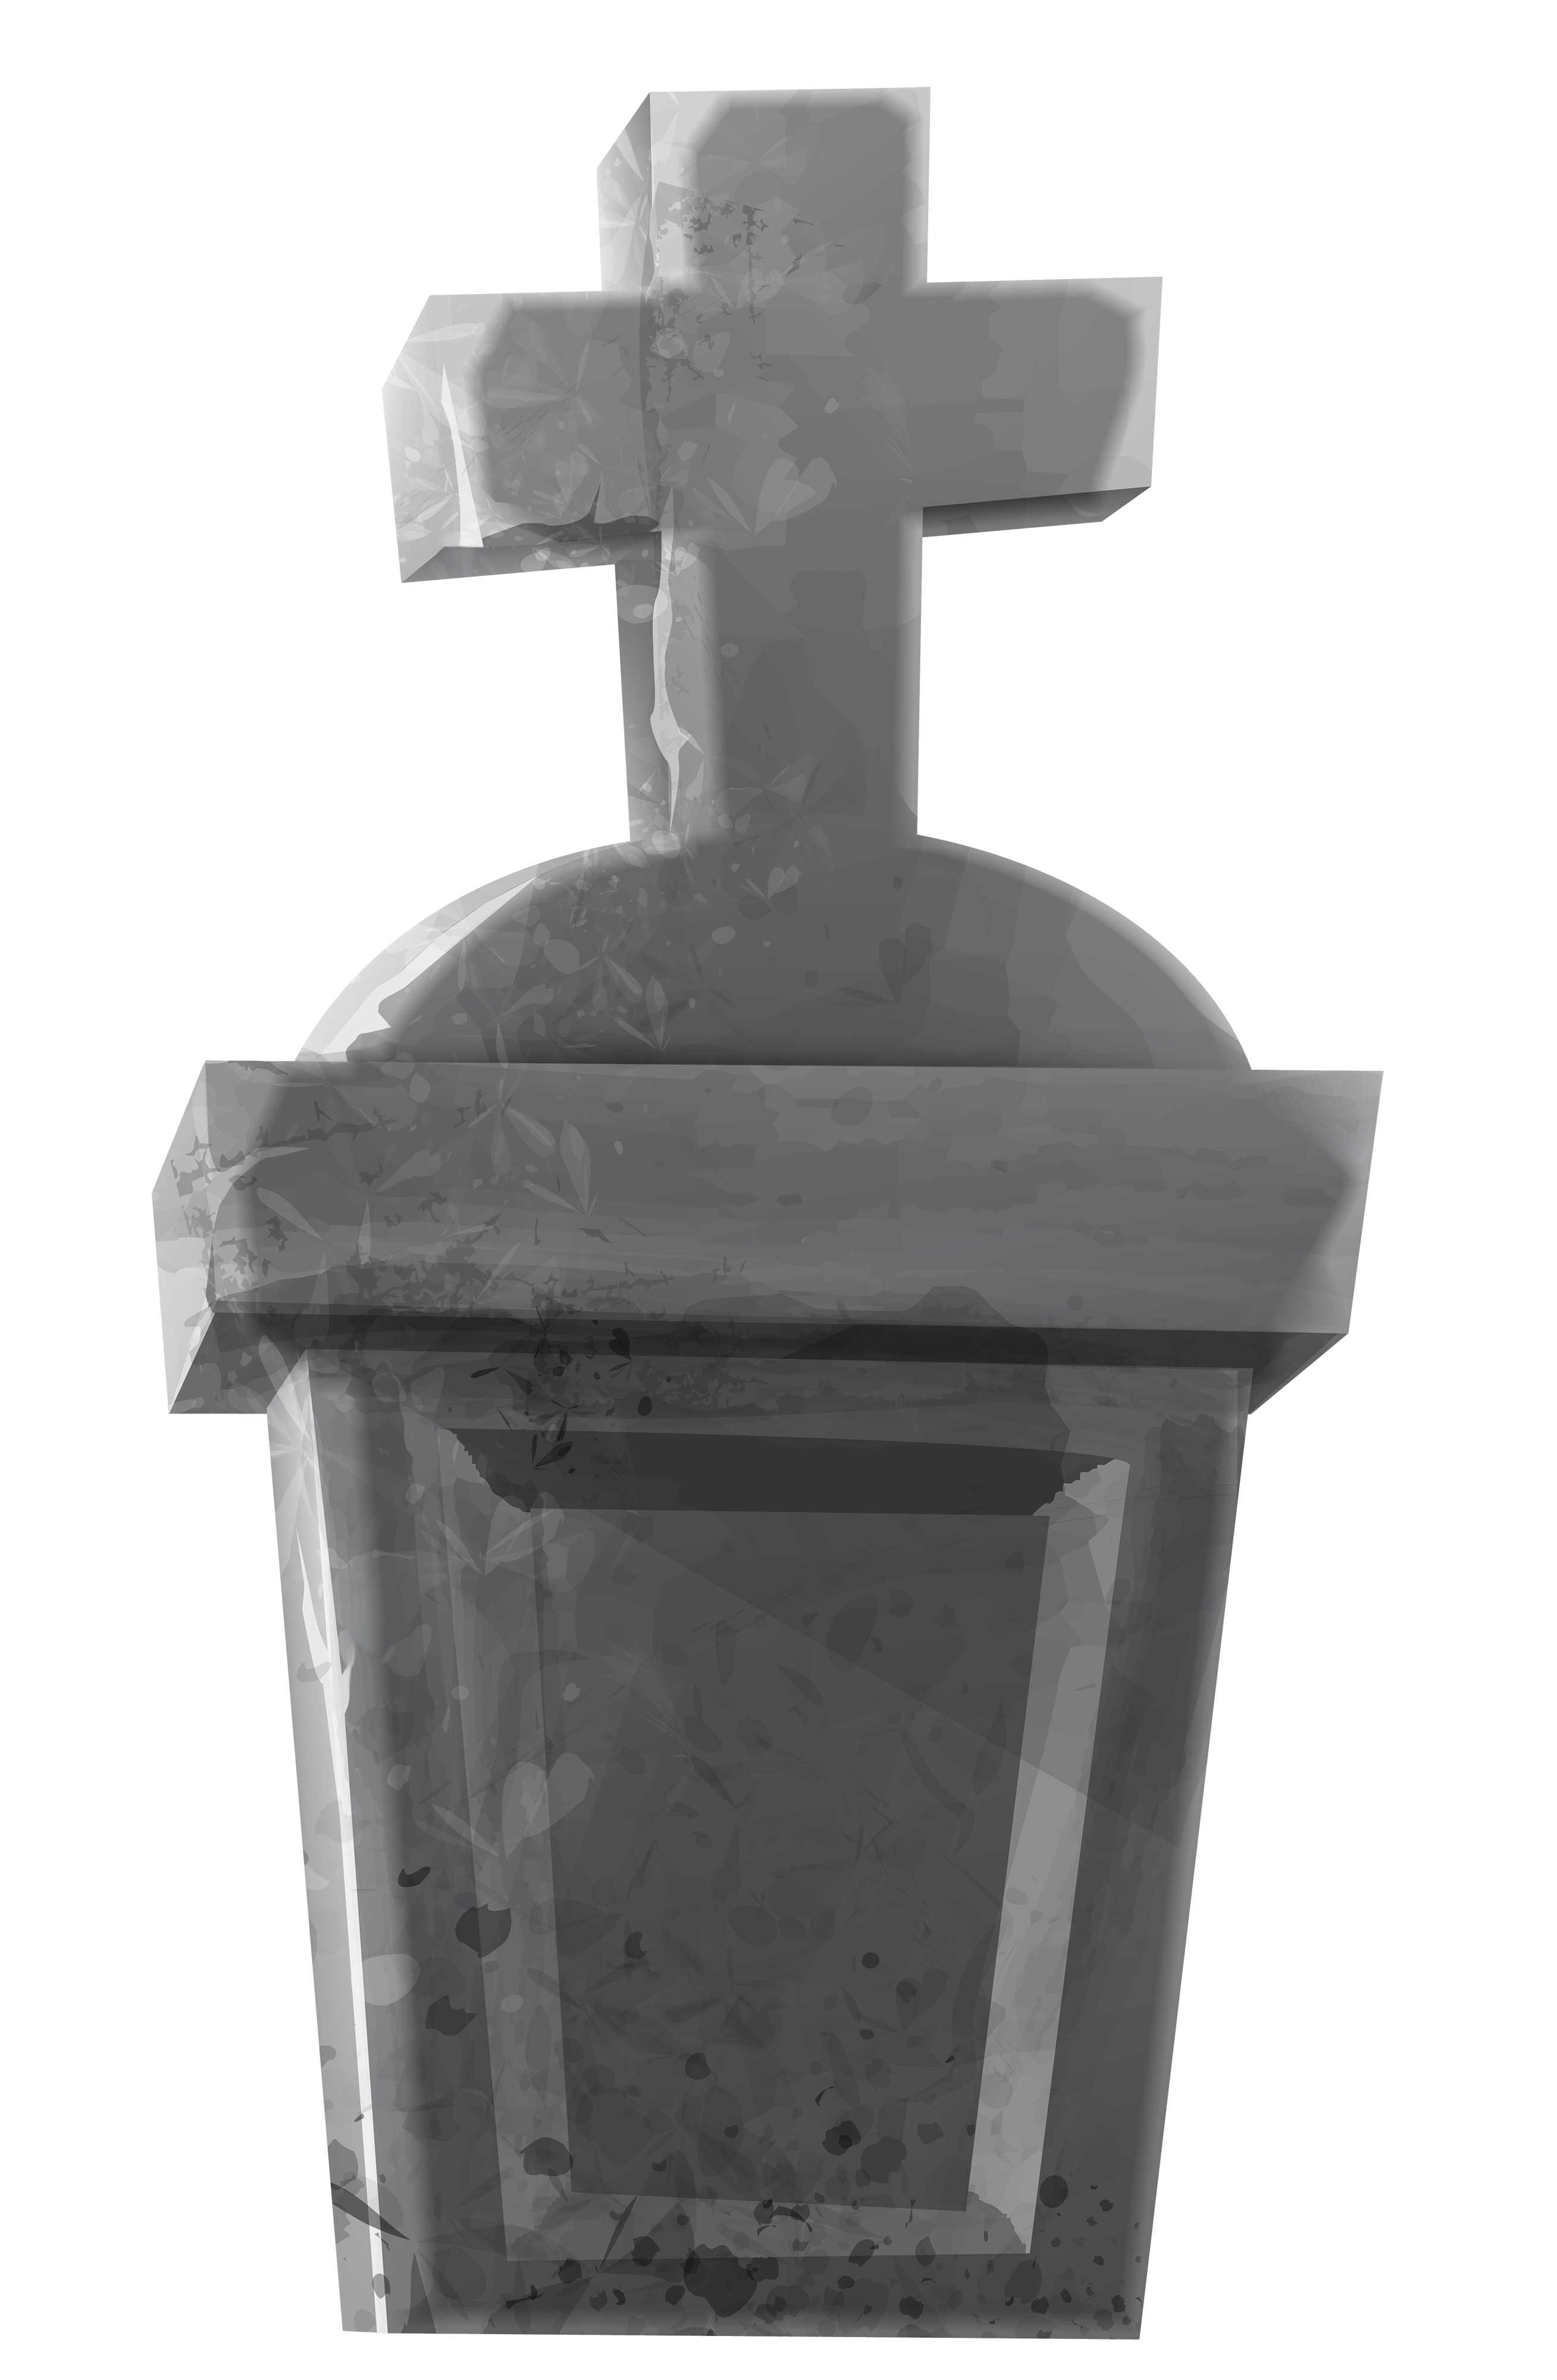 Tombstone clipart transparent Full View PNG size Yopriceville